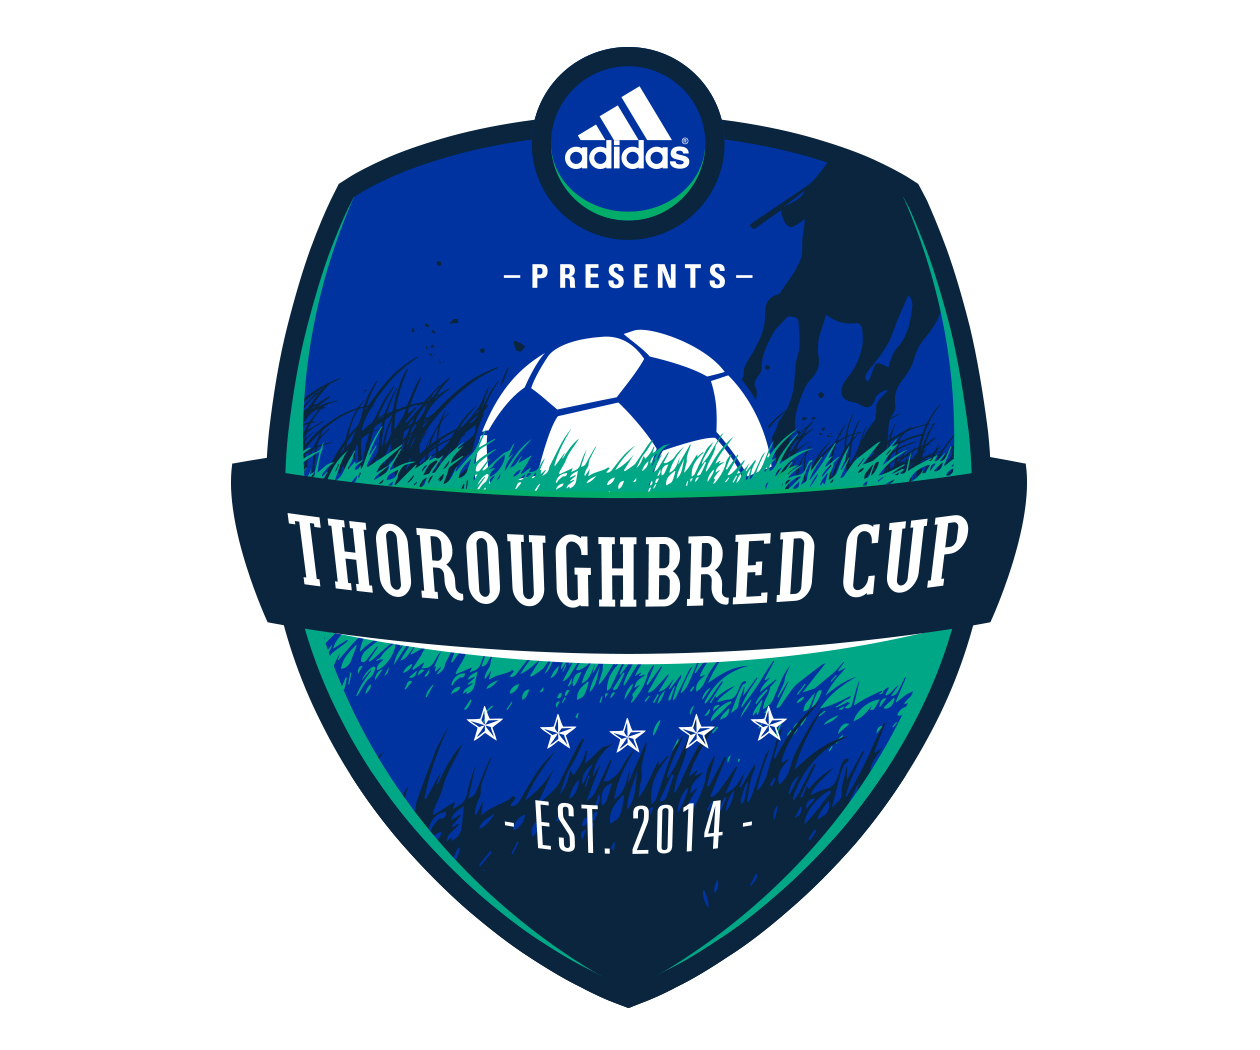 custom-soccer-logo-design-by-jordan-fretz-soccer-logo-design-for-thoroughbred-cup-tournament.png